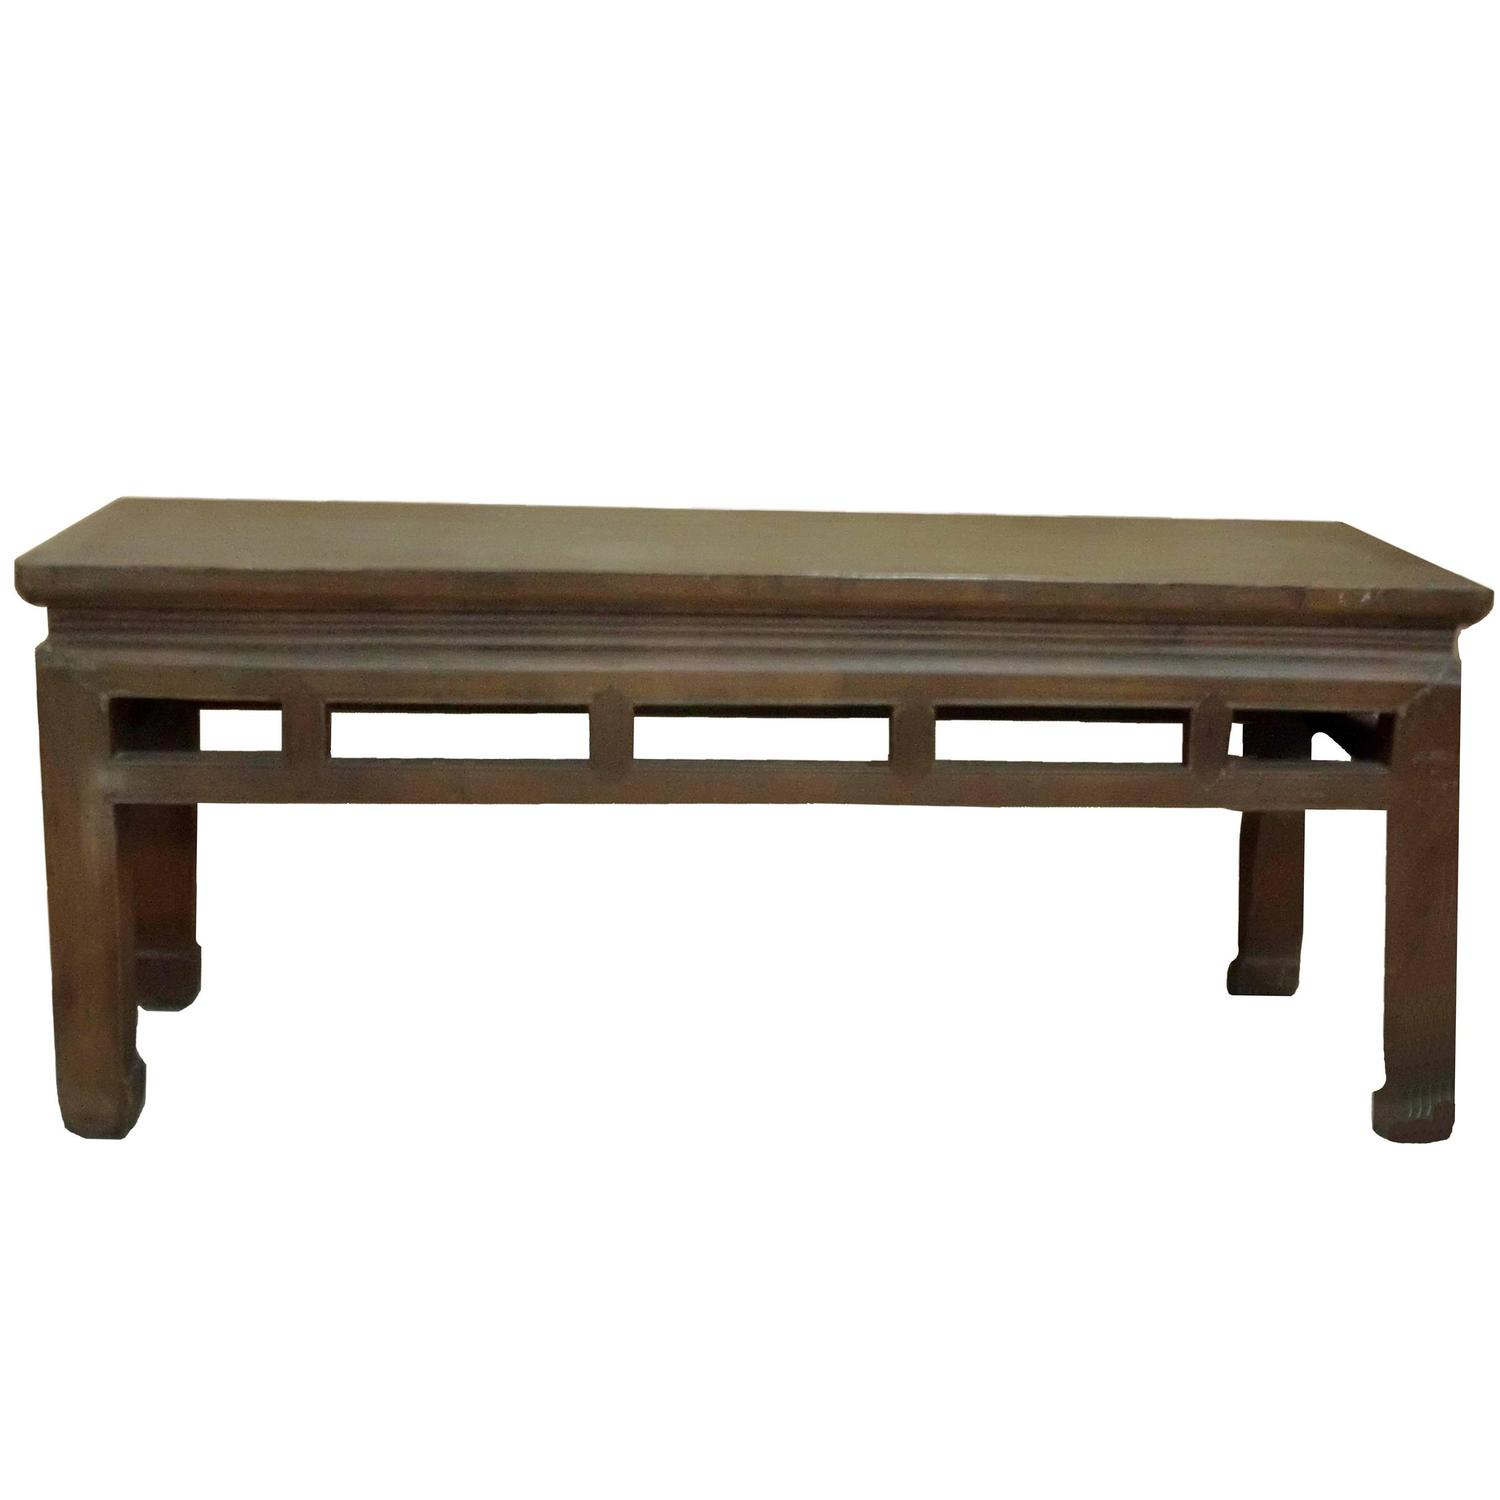 Chinese Antique Double Sided Spring Bench Or Low Table At 1stdibs